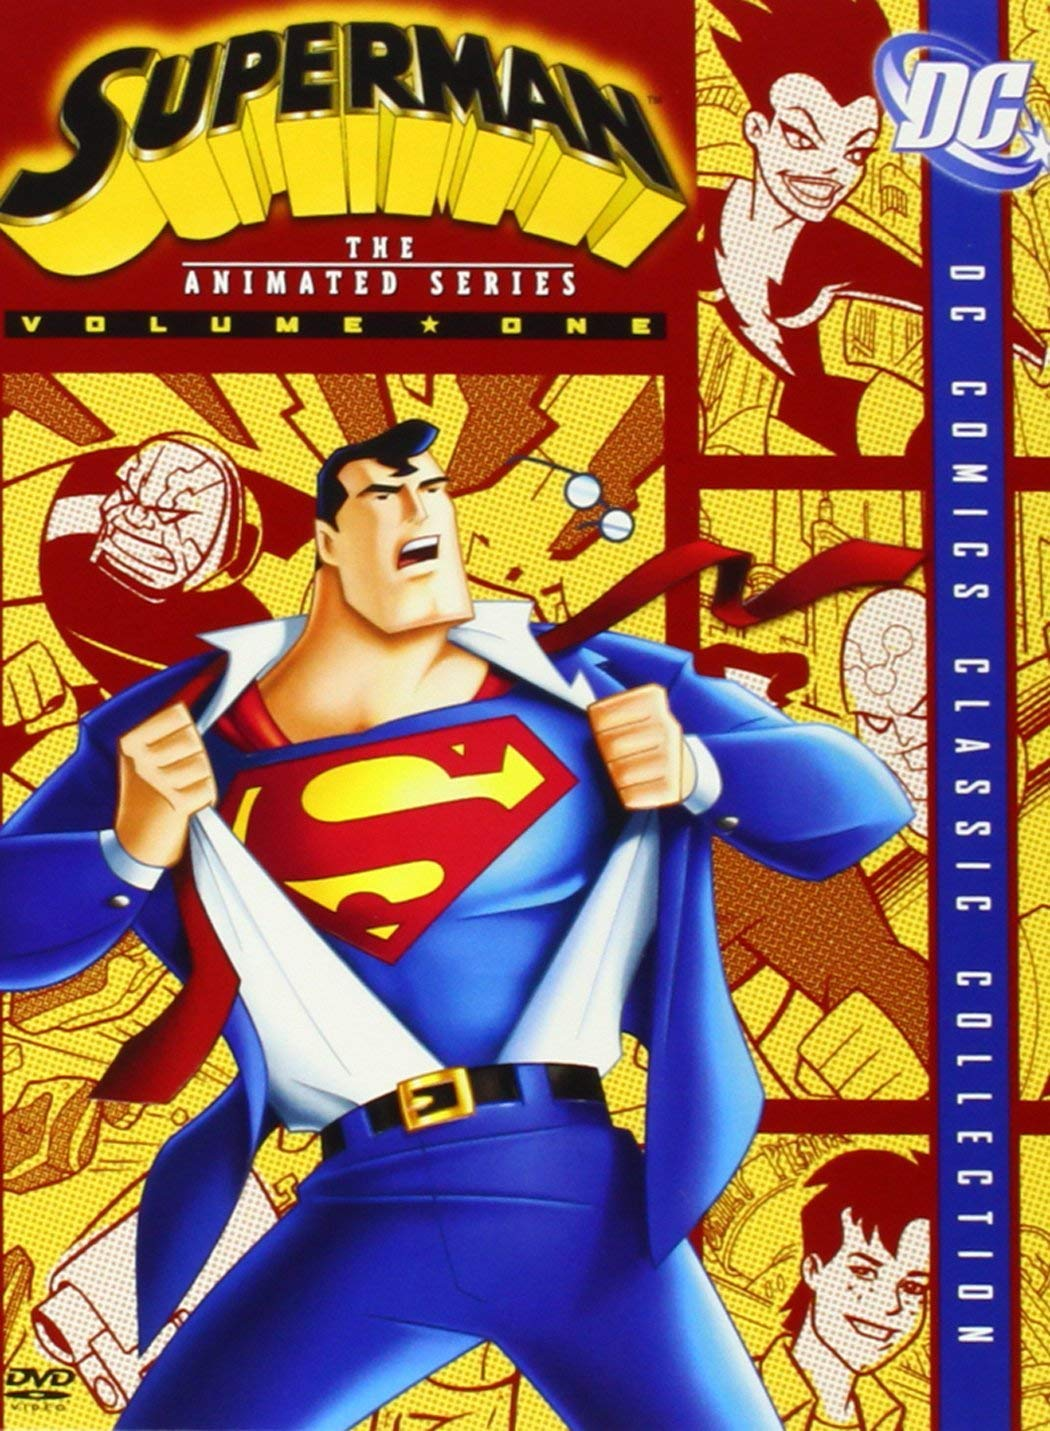 Superman: The Animated Series, Volume 1 (DC Comics Classic Collection) by WEA